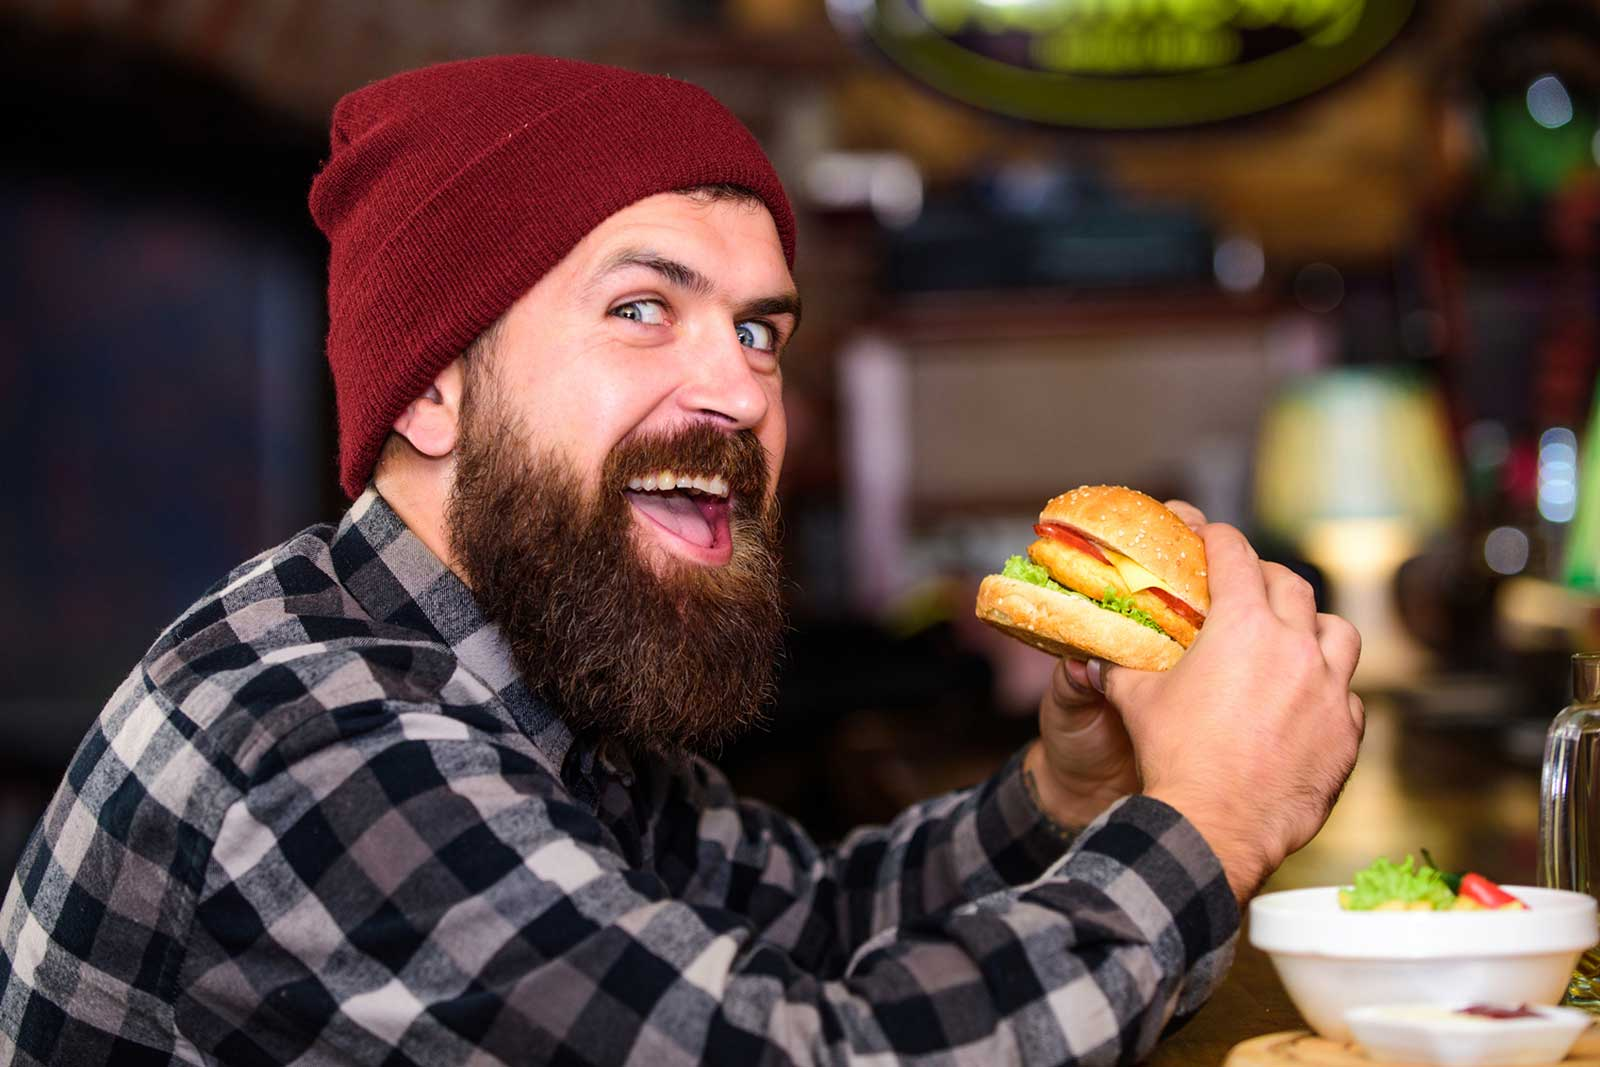 "I couldn't write a better caption than the one provided by BigStockPhoto: ""Hipster hungry man eat burger. Man with beard eat burger menu. Brutal hipster bearded man sit at bar counter. High calorie food. Cheat meal. Delicious burger concept. Enjoy taste of fresh burger"""